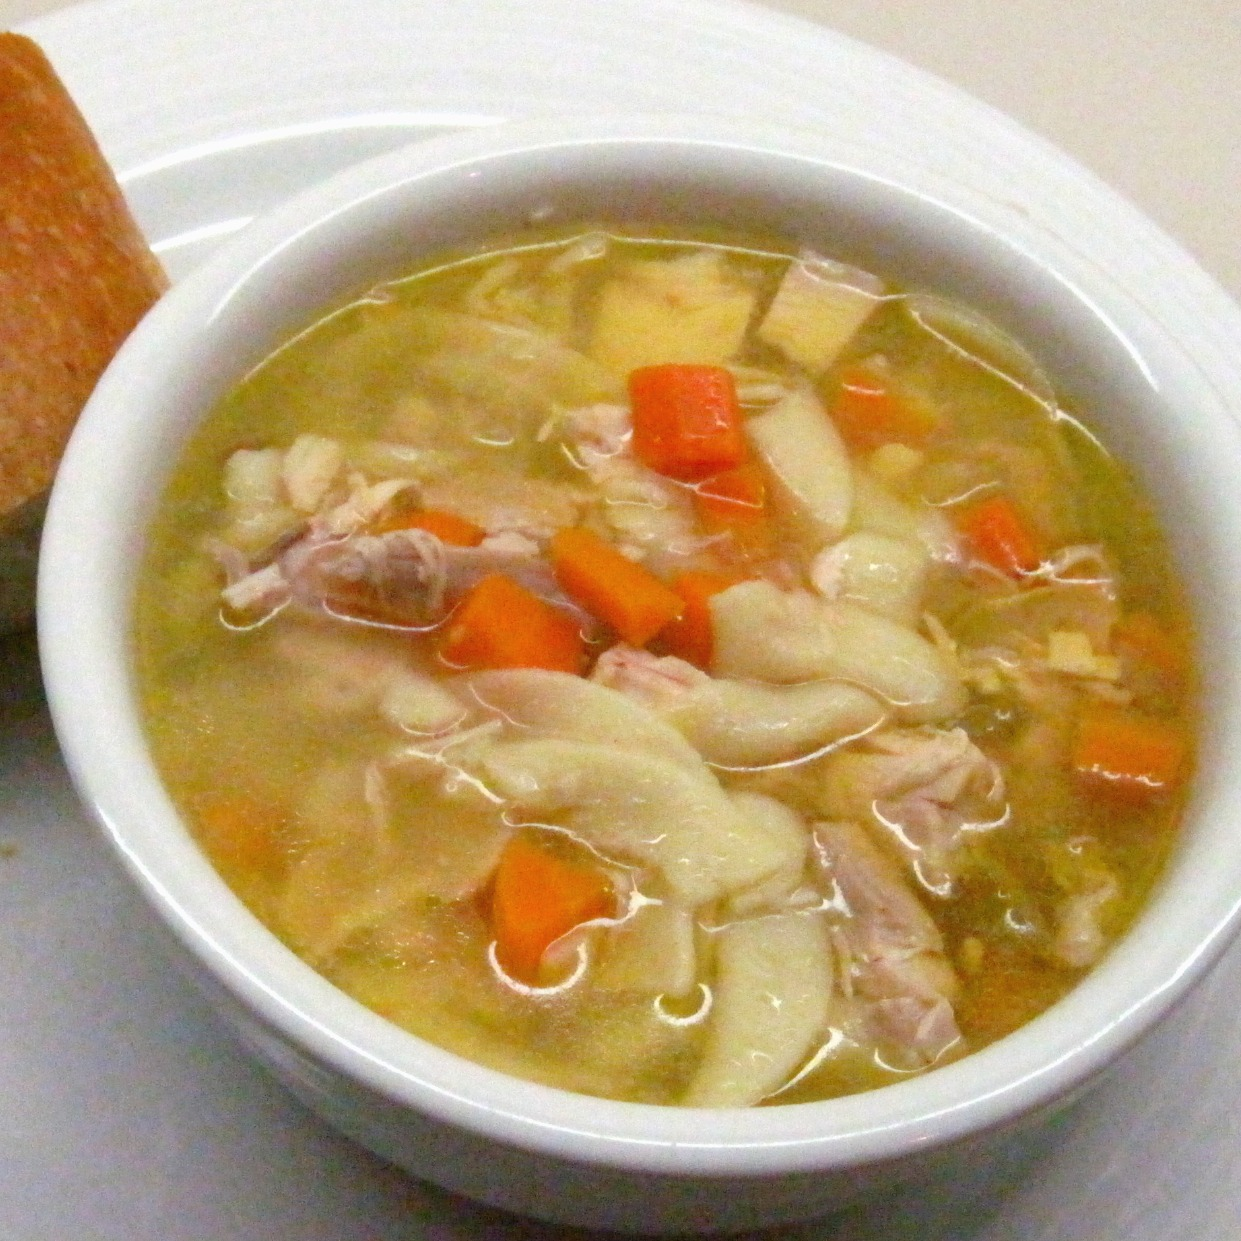 My Ultimate Chicken Noodle Soup